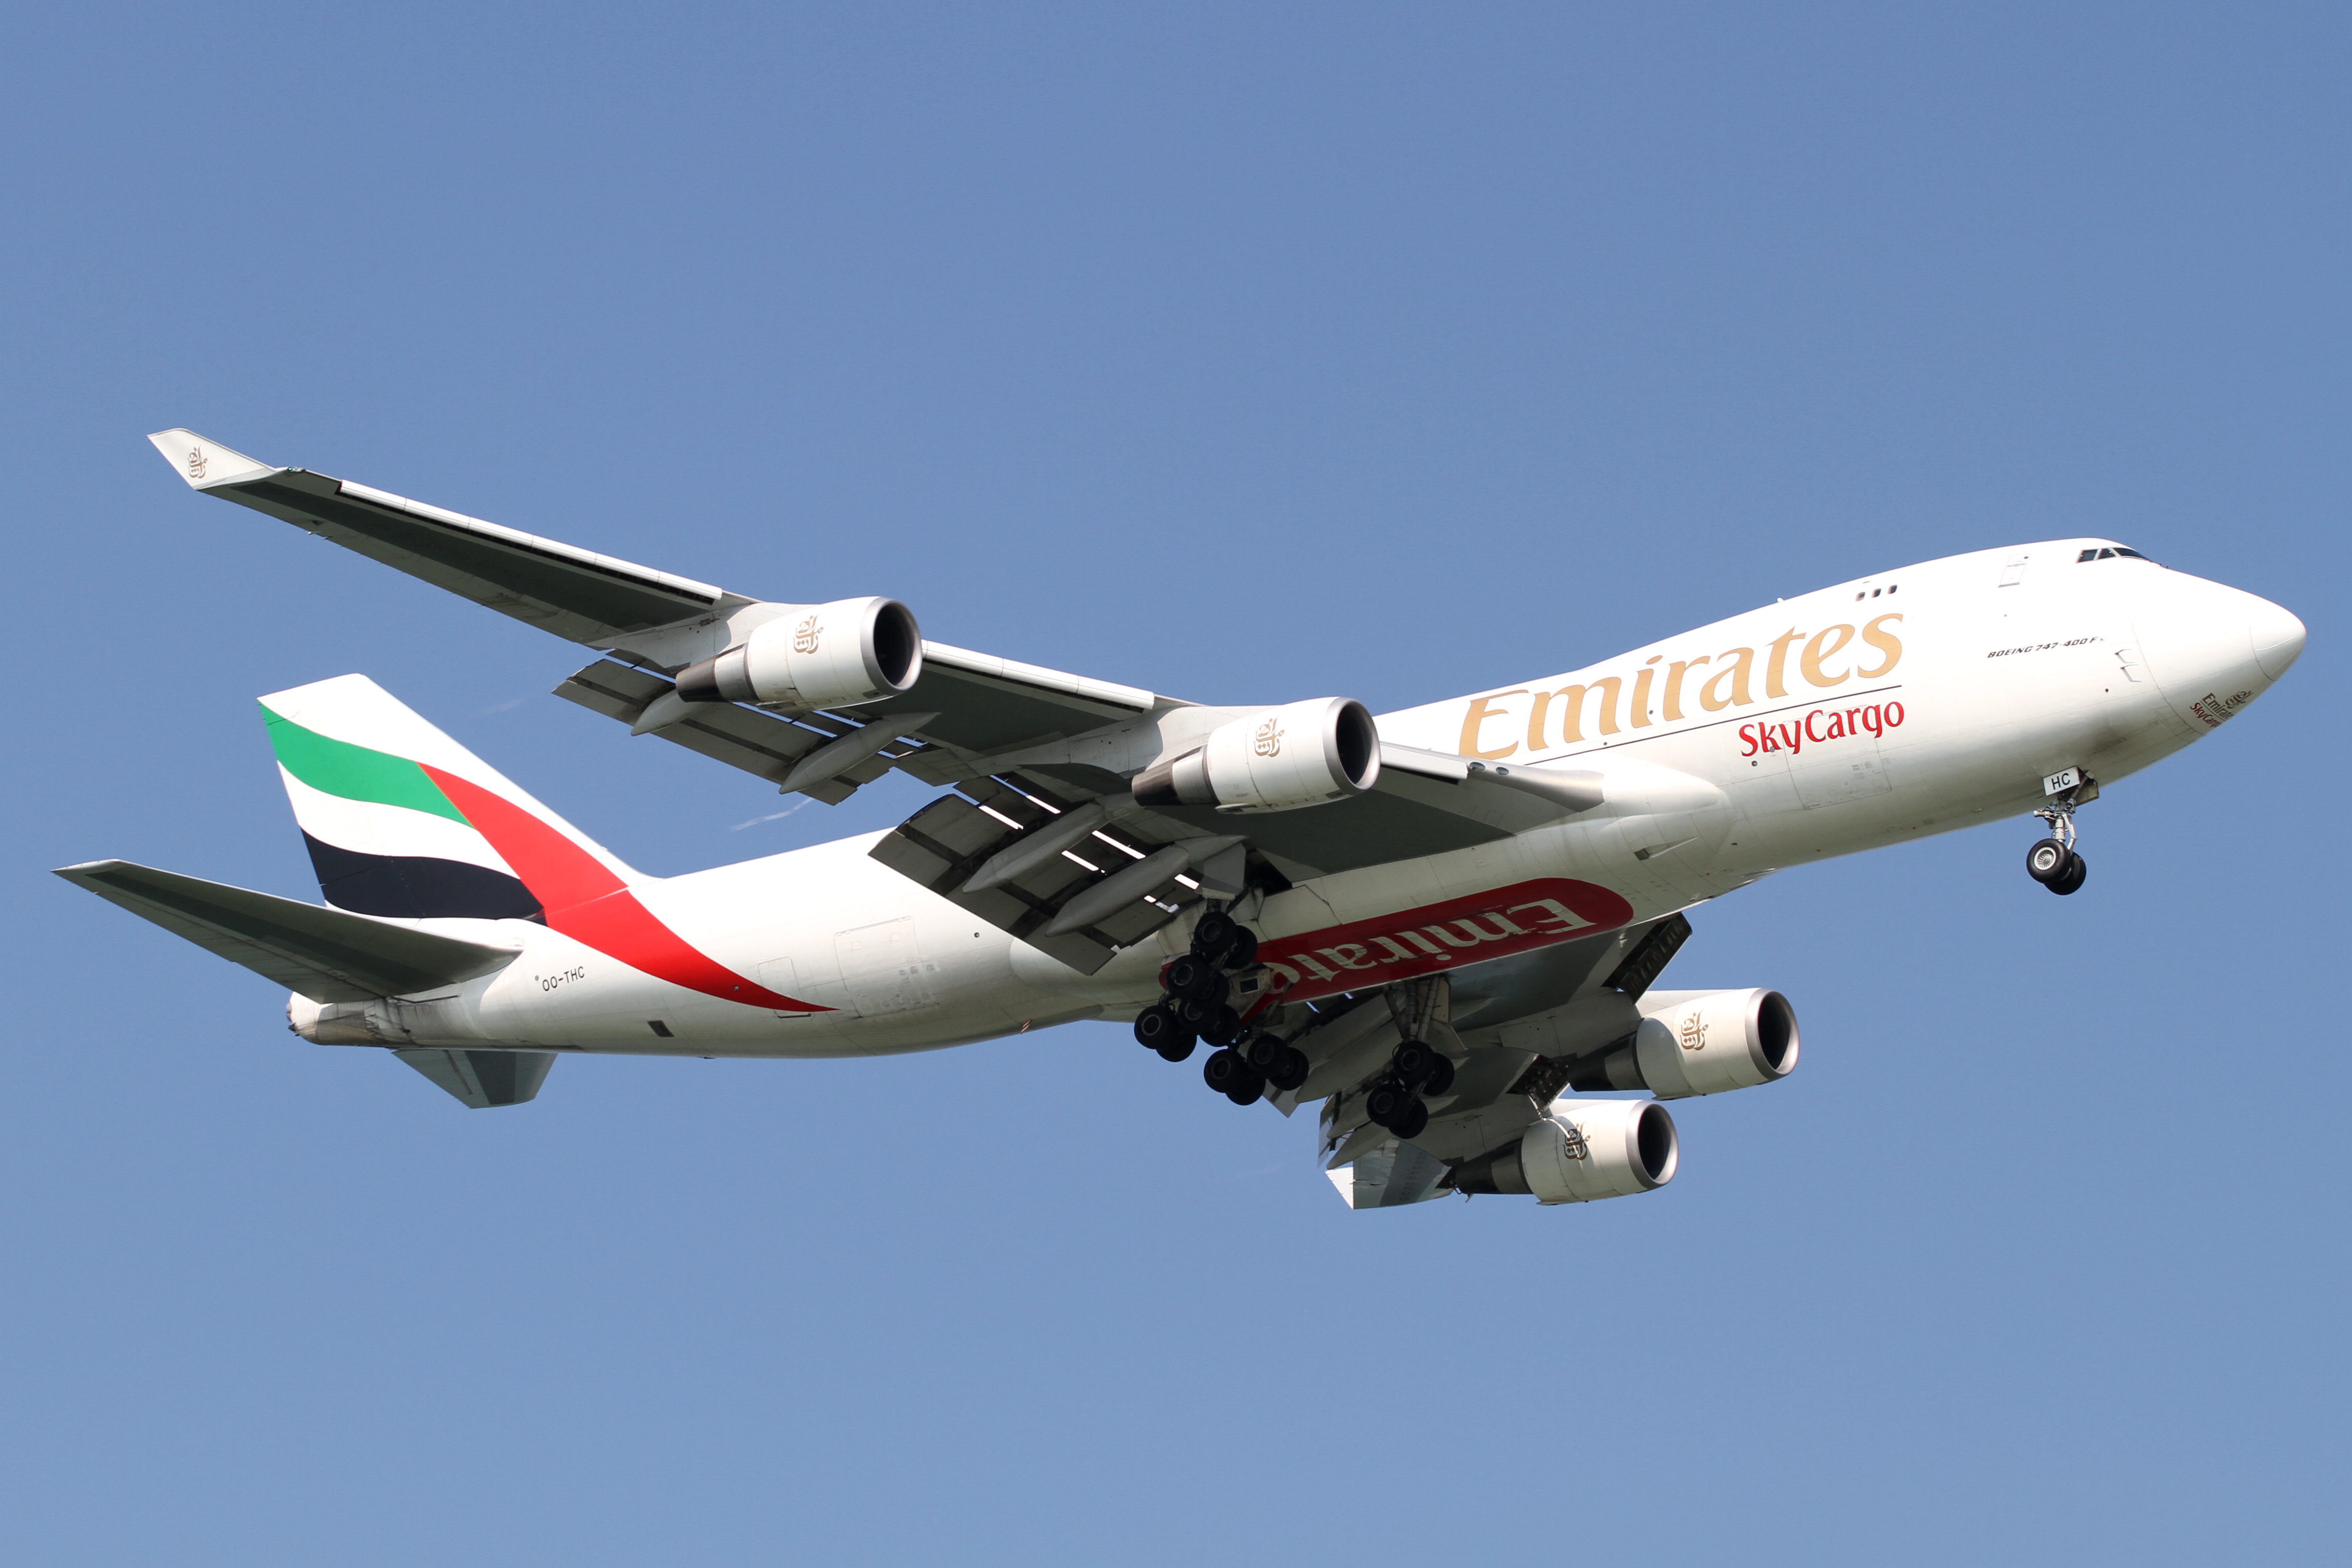 plane jumbo with File Emirates B747 400f Er Oo Thc   4992996283 on Watch furthermore 747 8 Intercontinental VIP Customer Buys Boeing Jumbo Jet Turn Sky Palace as well Los Rodeos Tenerife El Peor Accidente additionally File Emirates B747 400F ER OO THC   4992996283 additionally Boeing 747.